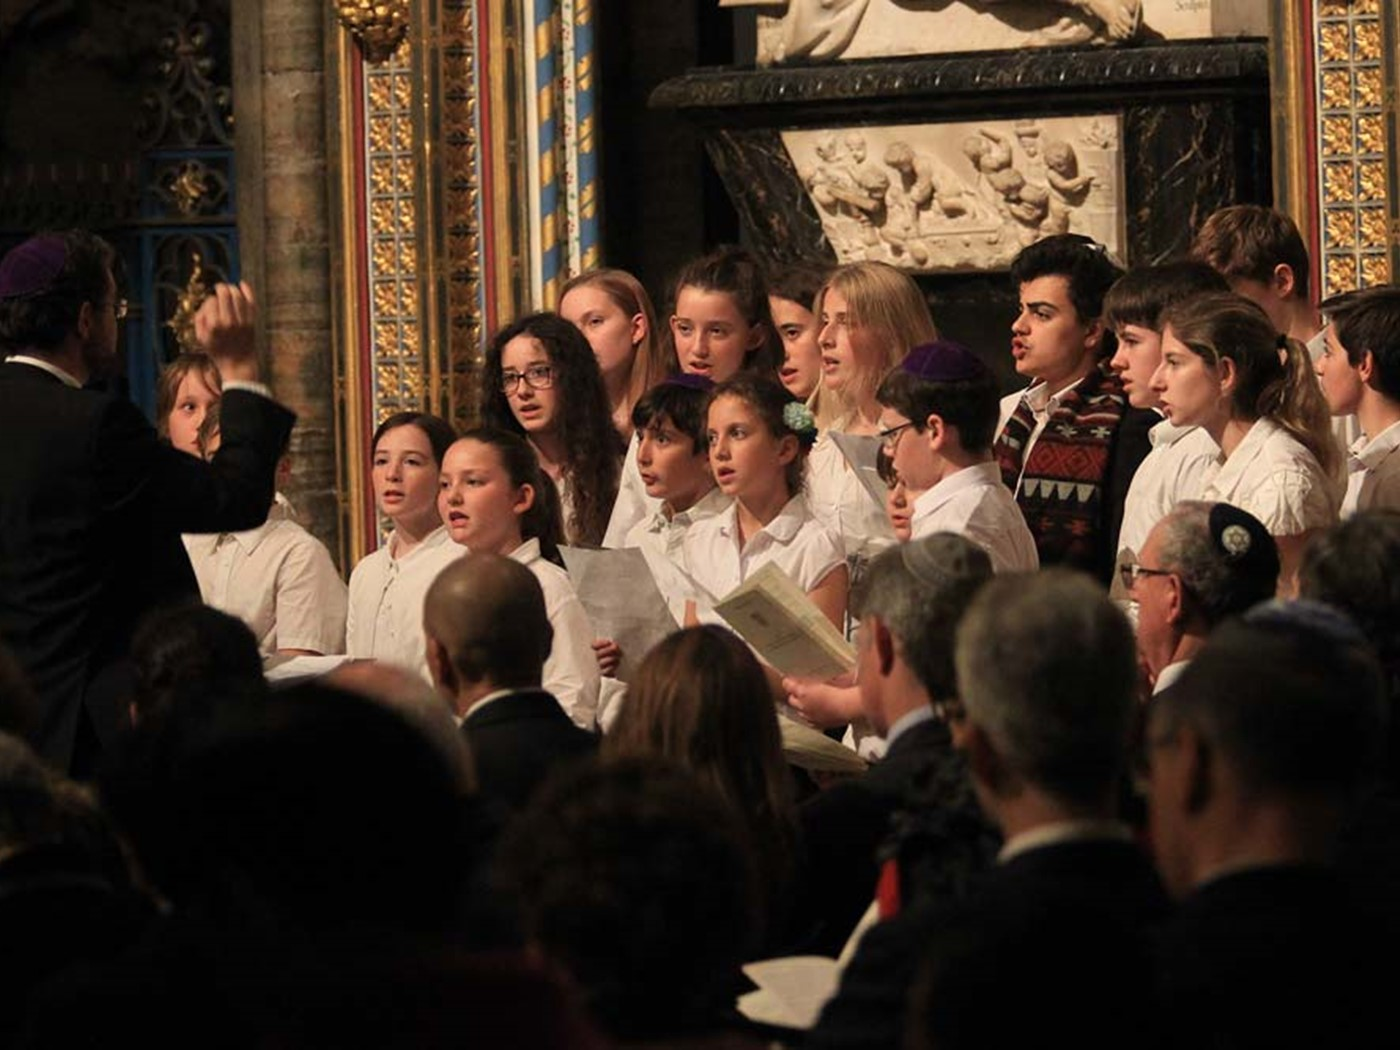 The Belsize Square Synagogue Youth Choir sings Guten Abend